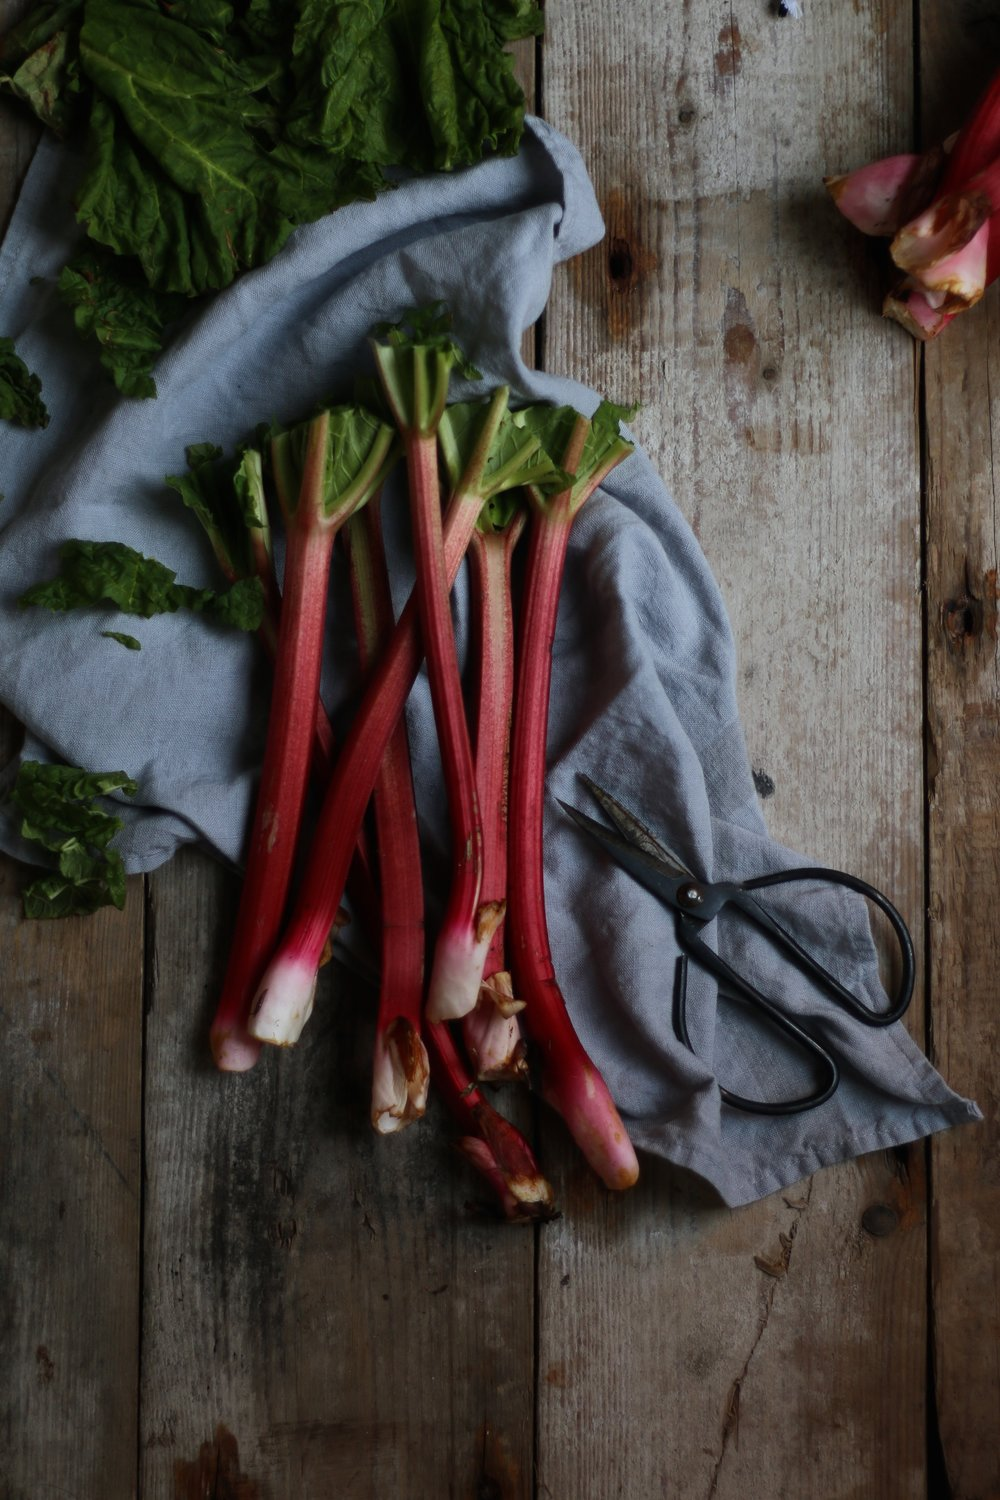 Rhubarb styled by Jette Virdi, food stylist based in London and Dublin